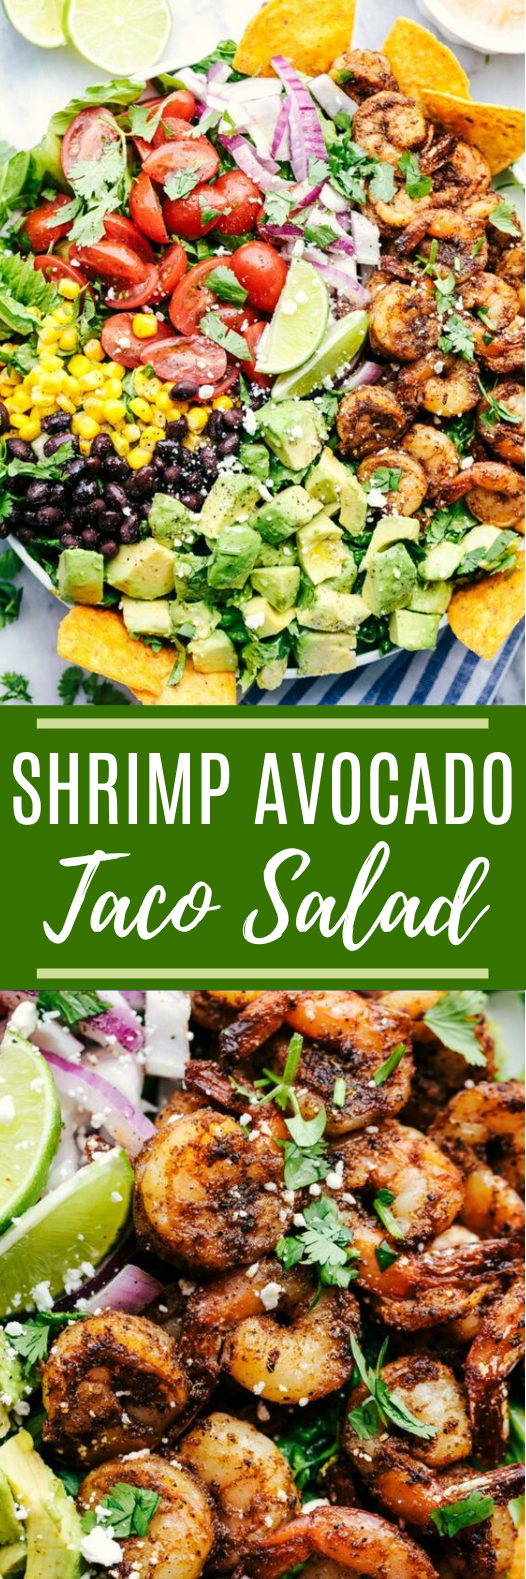 Shrimp Avocado Taco Salad #healthy #salad #glutenfree #lowcarb #diet